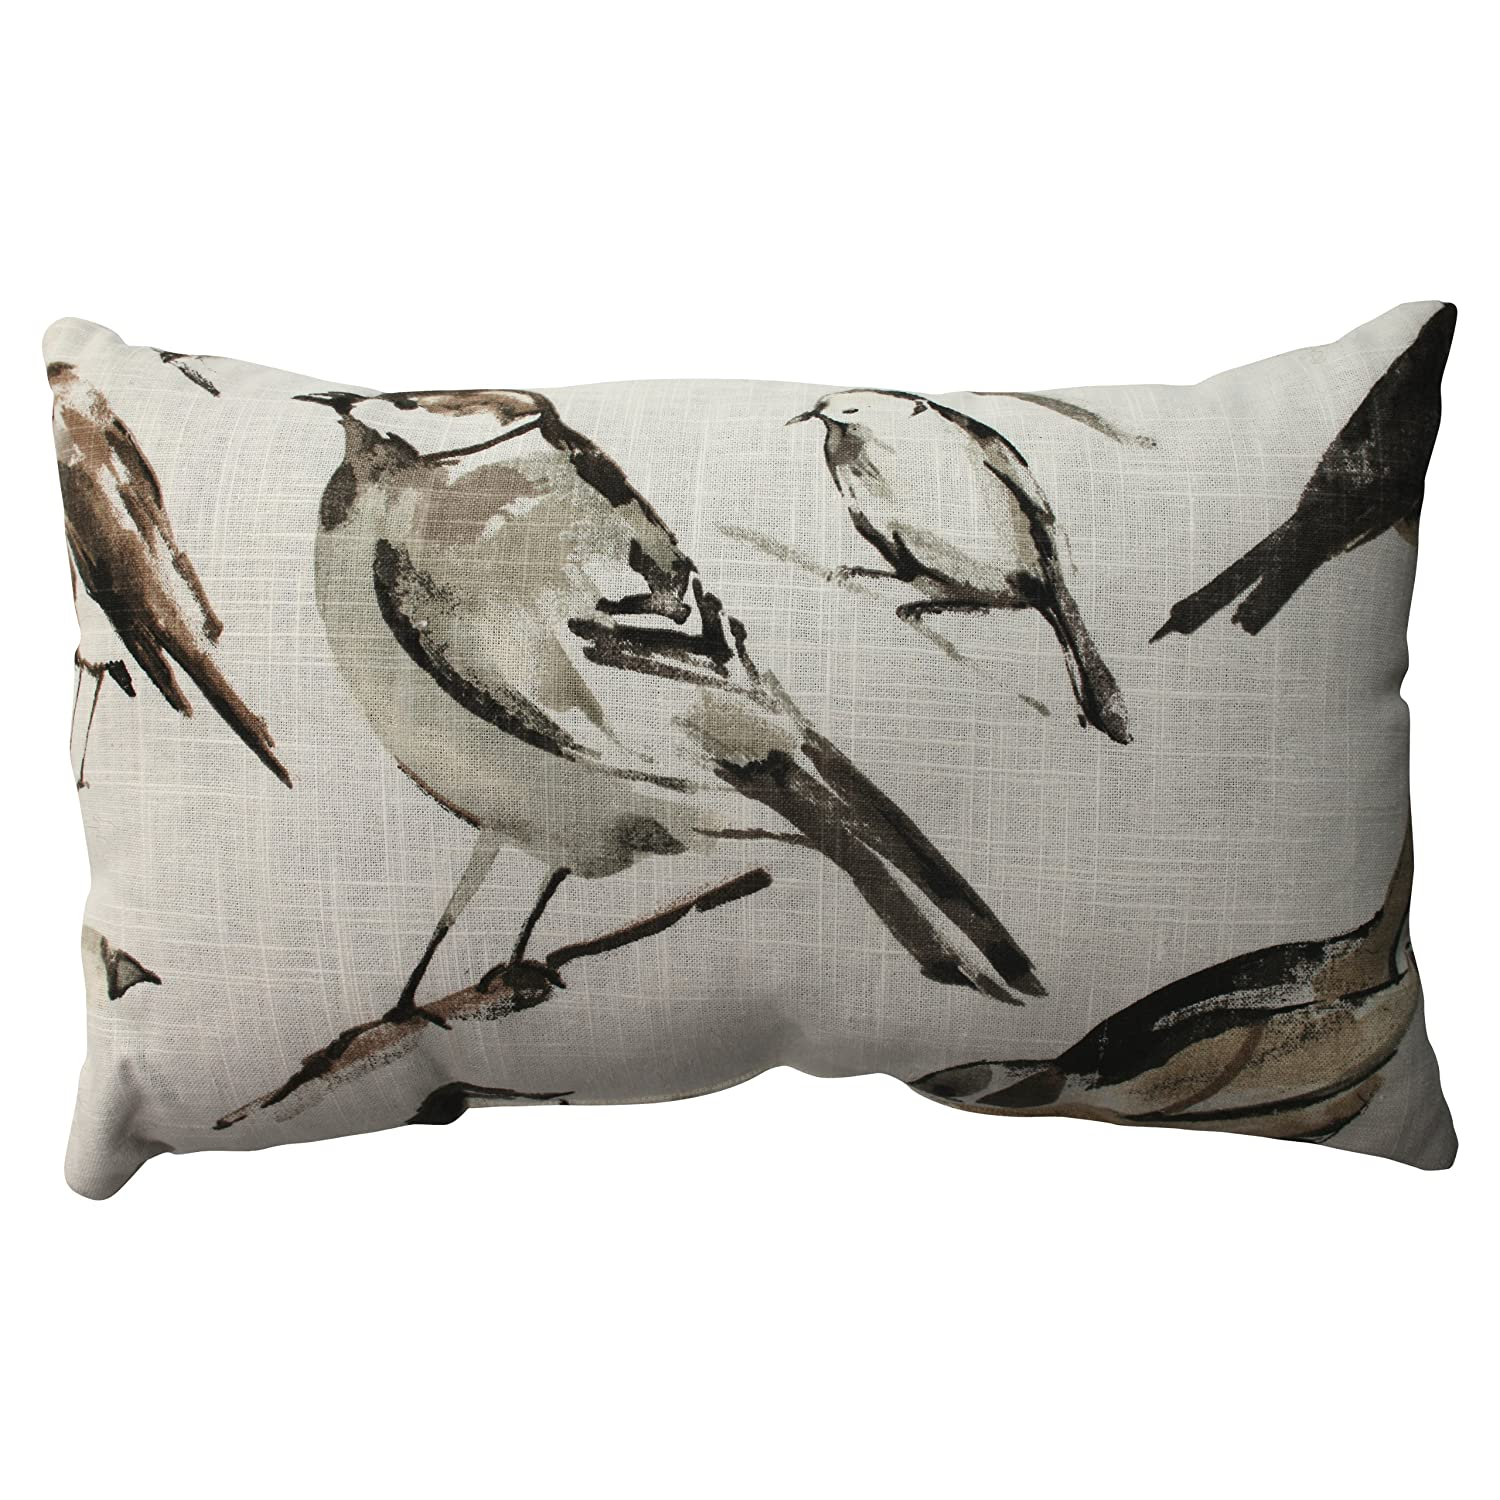 Pillow Perfect Bird Watcher Floor Pillow, 24.5-Inch, Charcoal 512389